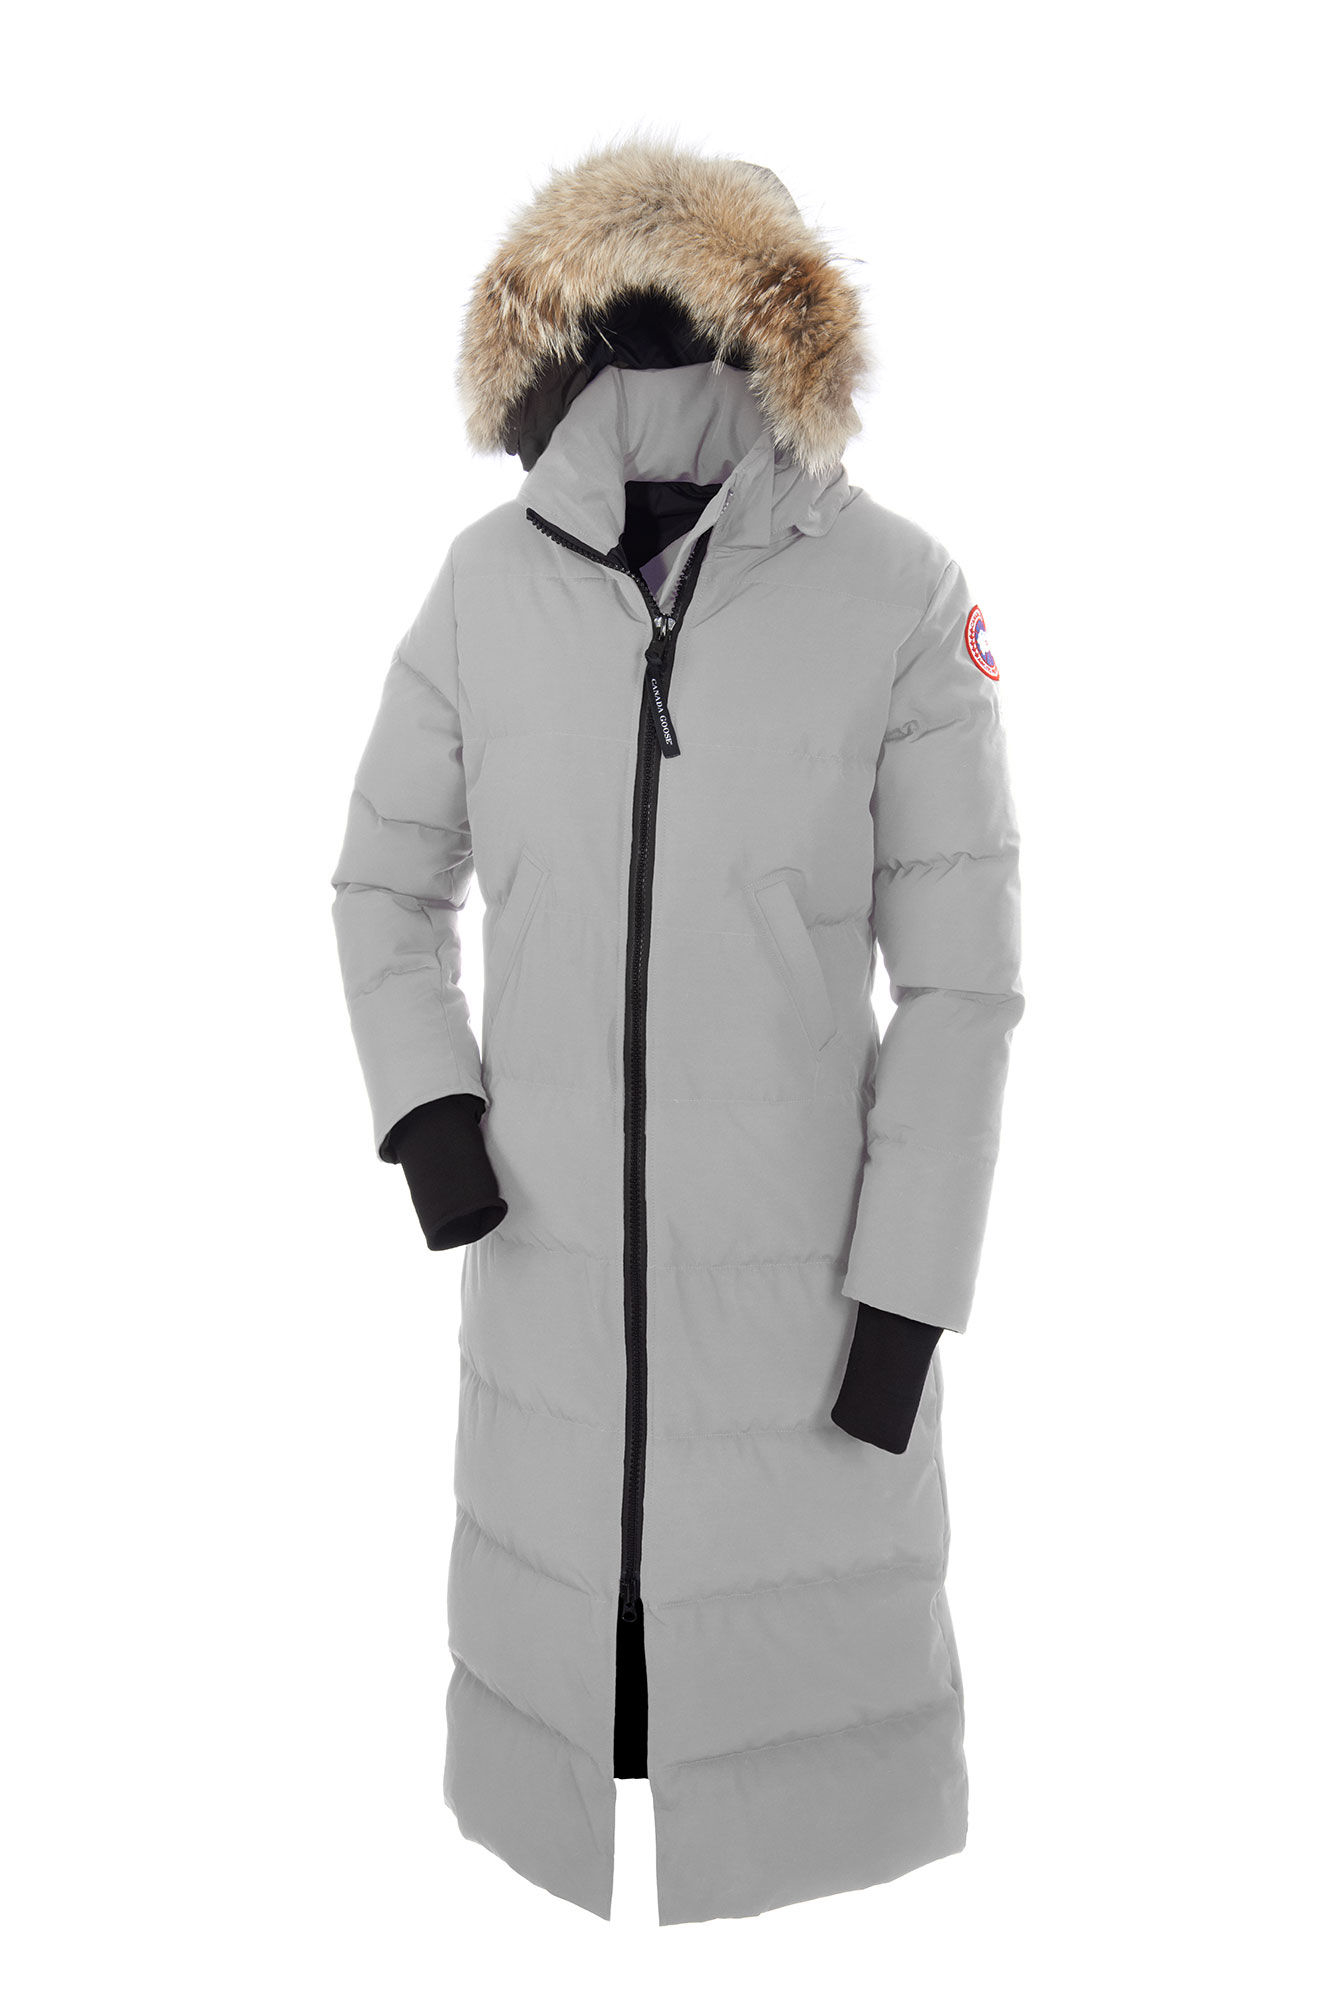 Canada Goose Ebay >> Canada Goose Womens Expedition Down Parka With Fur Hood Gray